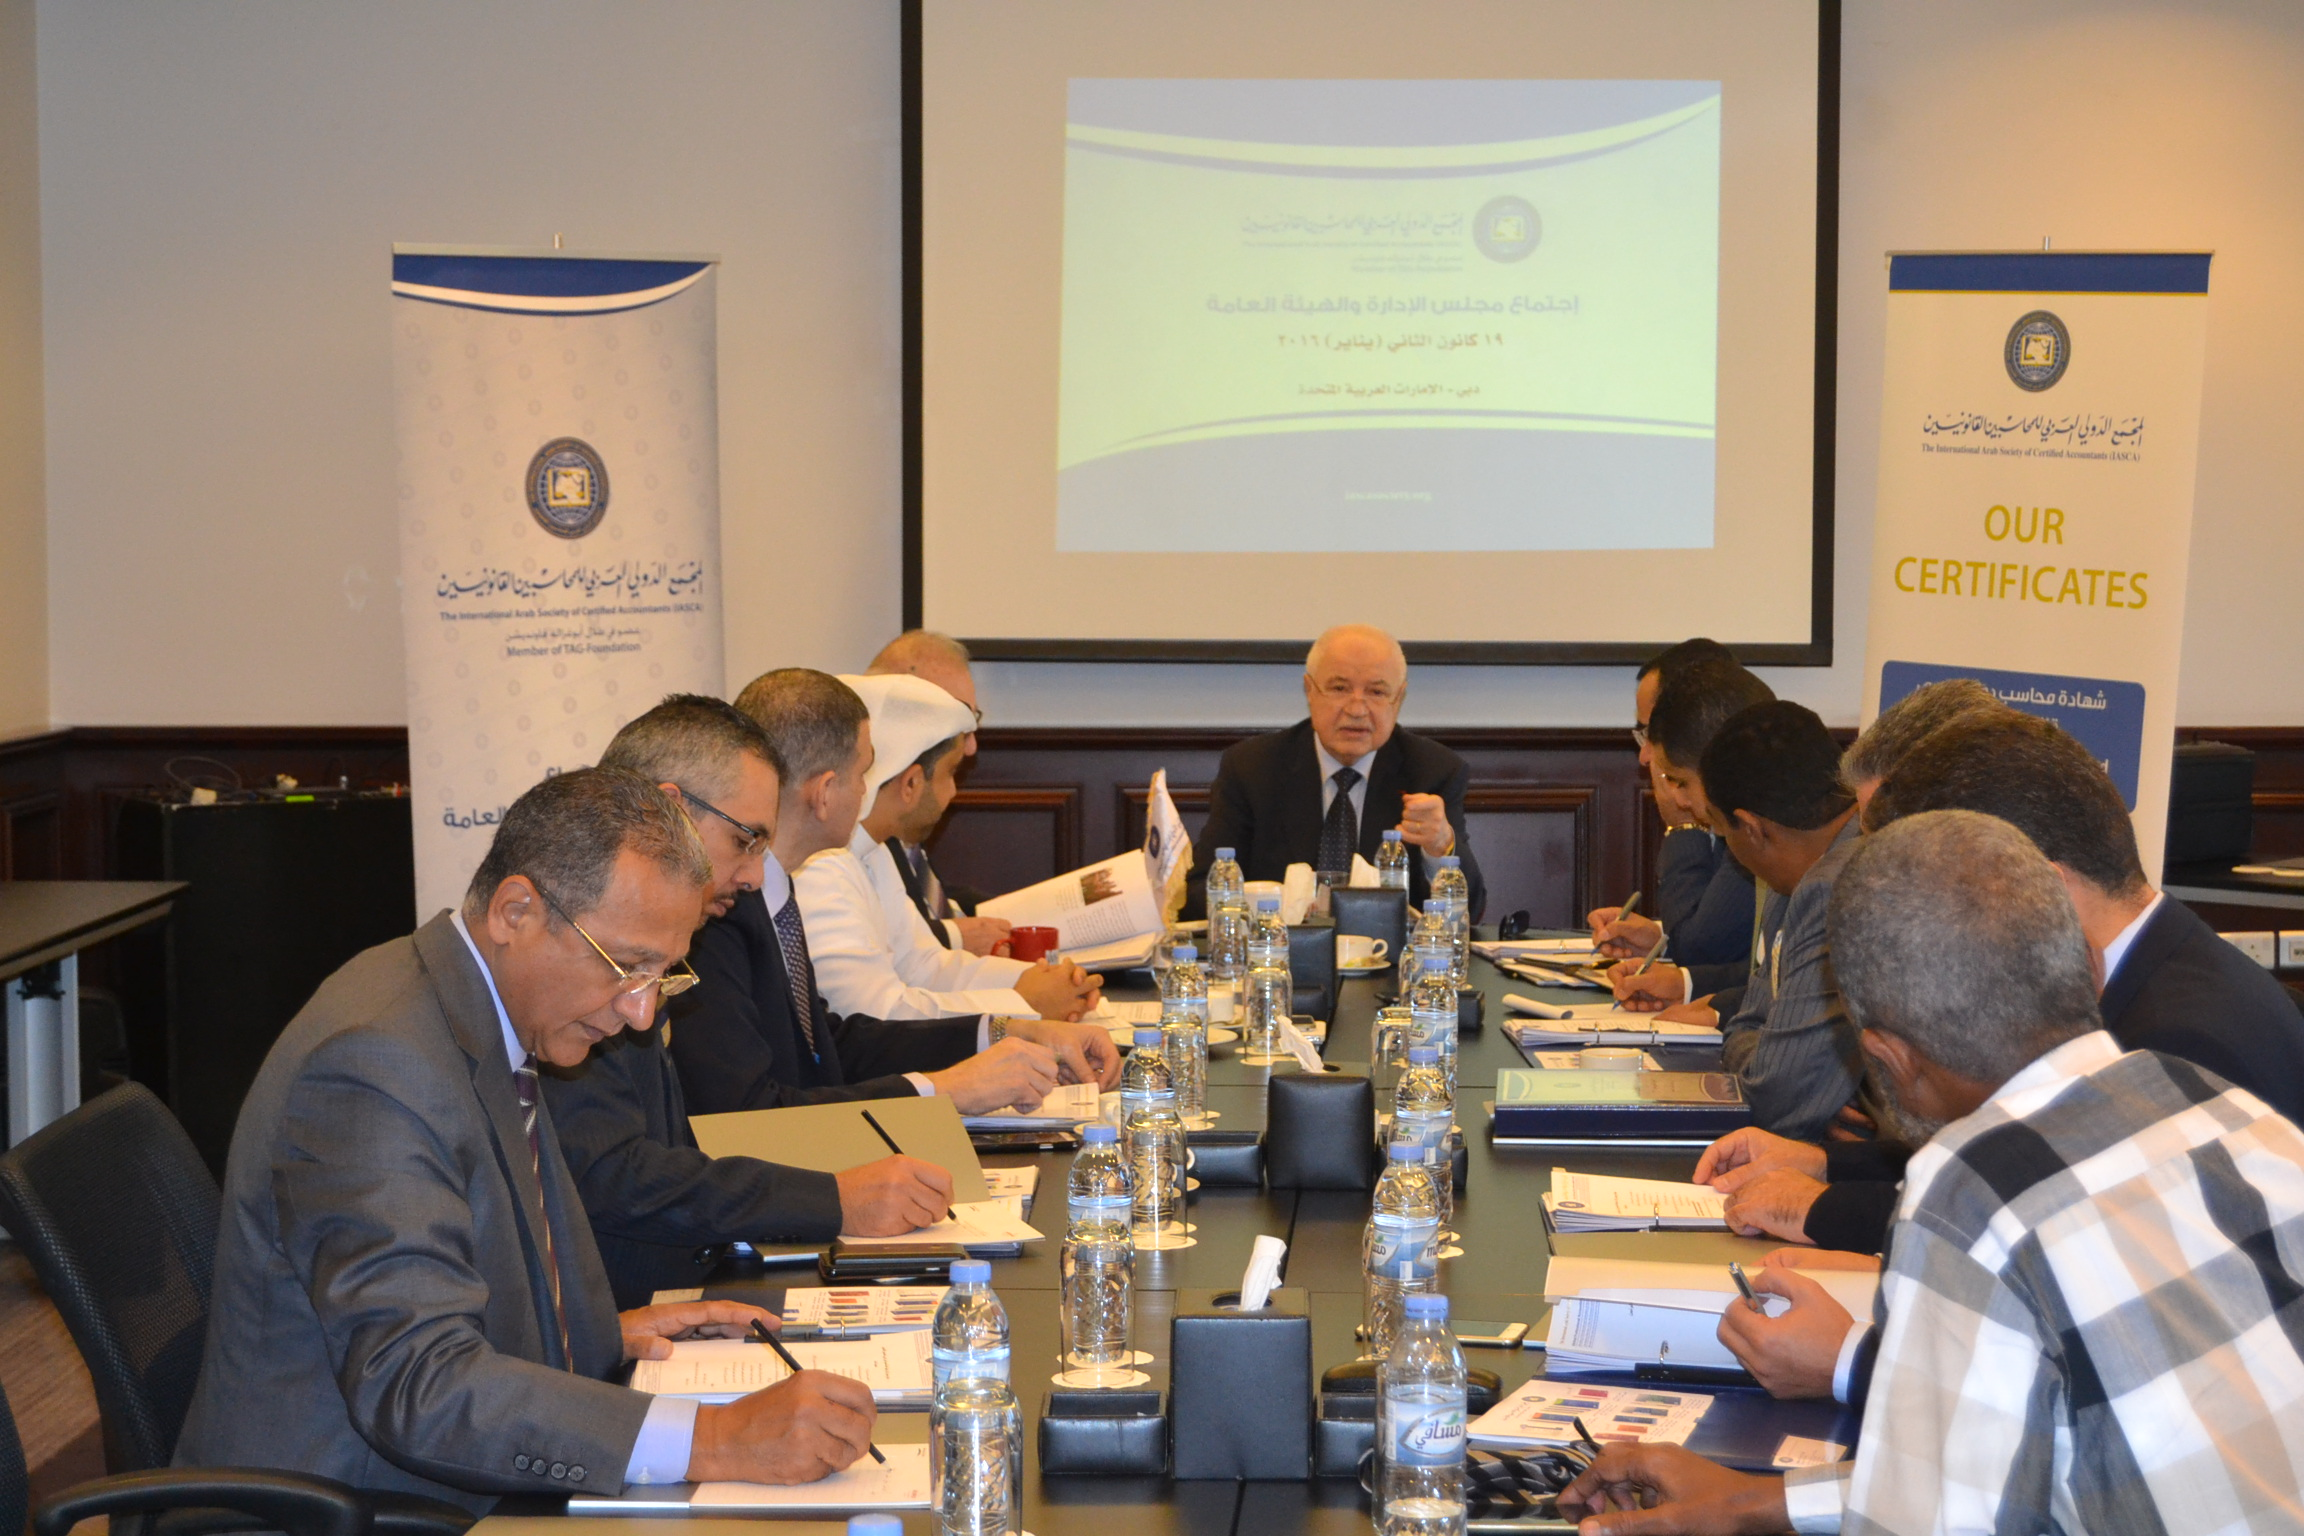 HE Dr. Talal Abu-Ghazaleh heads the annual meetings of the Board of Directors and the General Assembly of the International Arab Society of Certified Accountants (IASCA) and launched the future programs of the Society